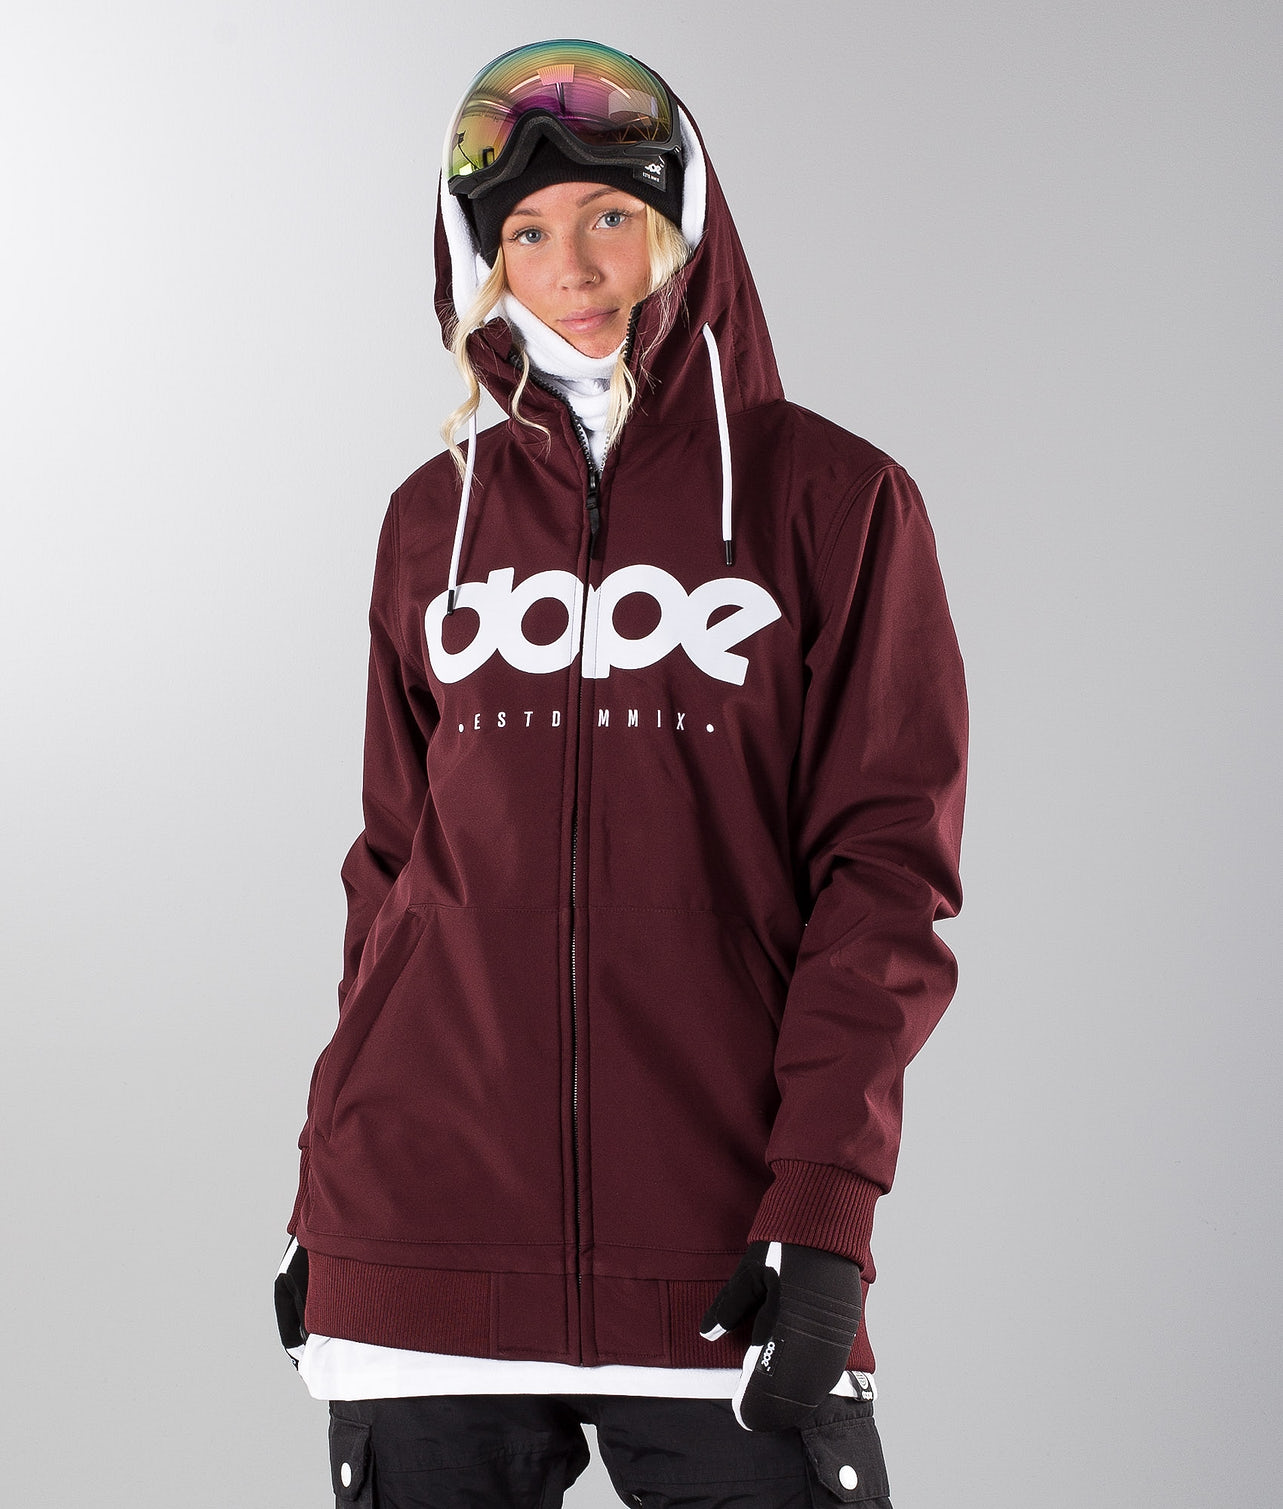 Buy Standard DO Snowboard Jacket from Dope at Ridestore.com - Always free shipping, free returns and 30 days money back guarantee